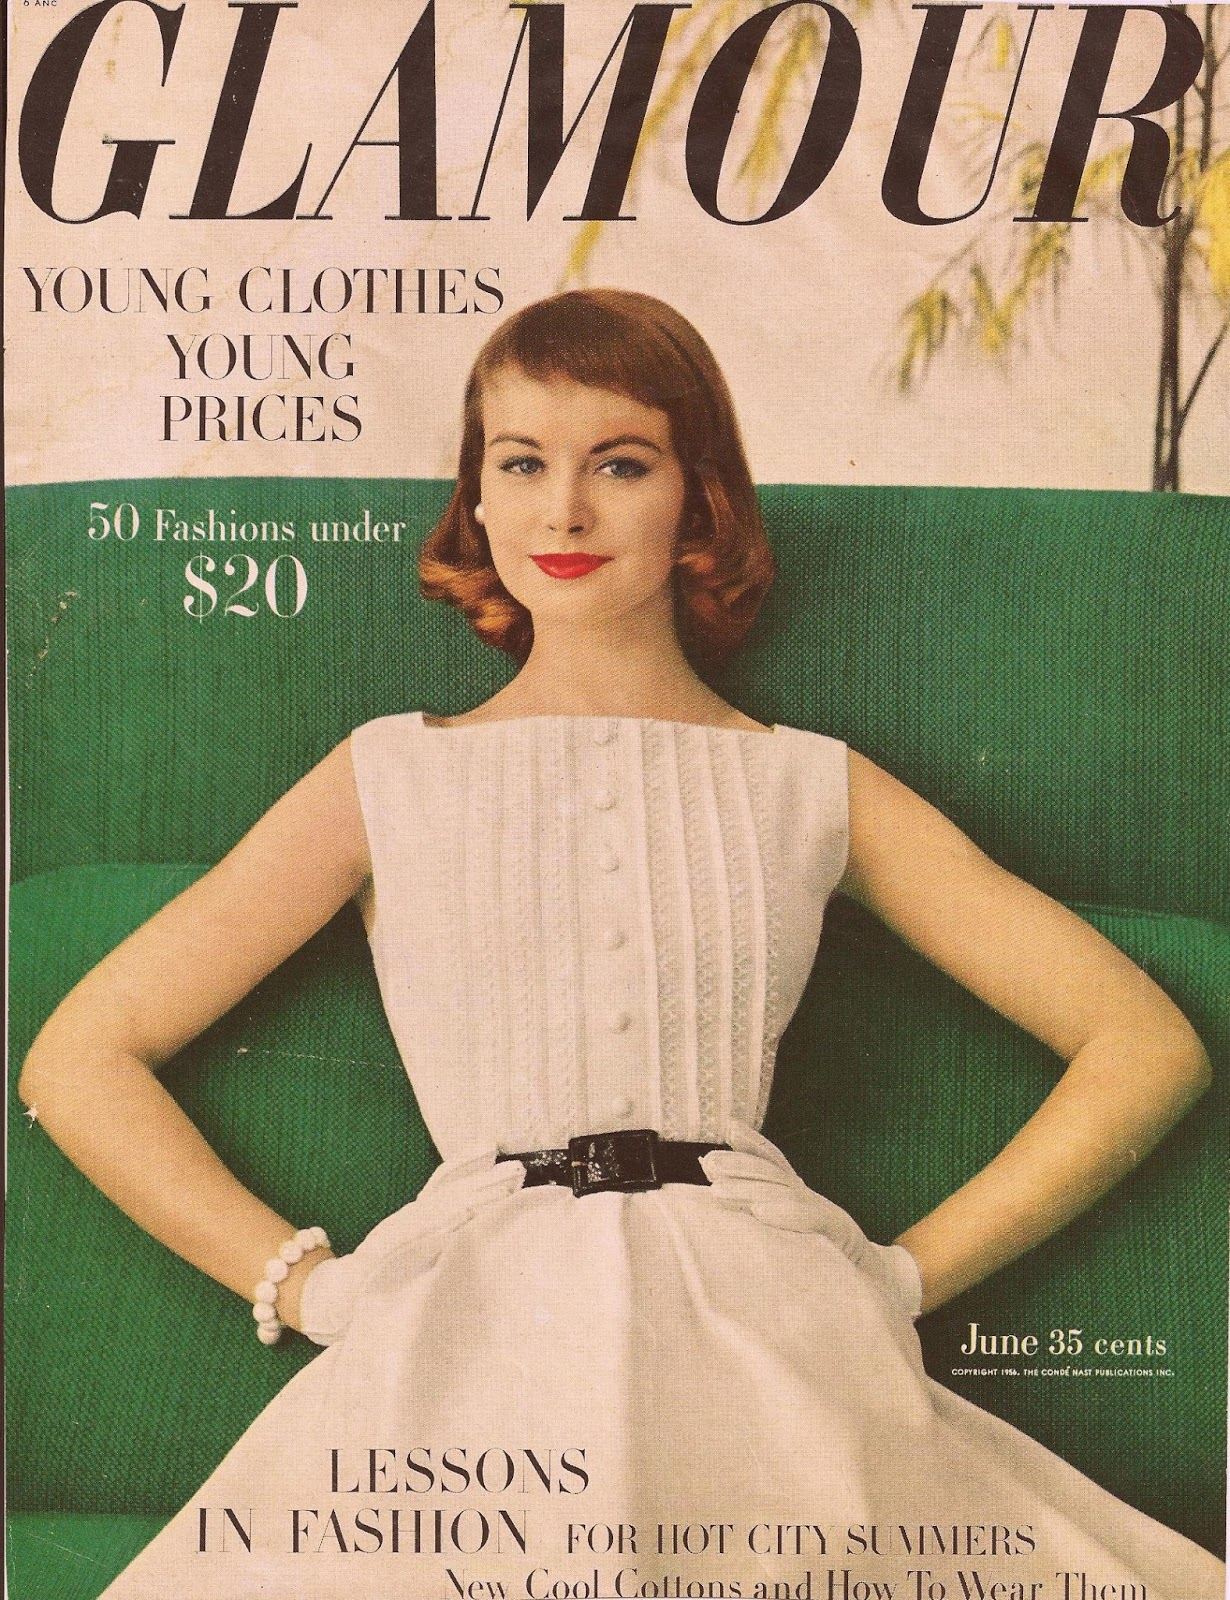 Retrospace: The Elegance Of The 50s Through Magazine Covers